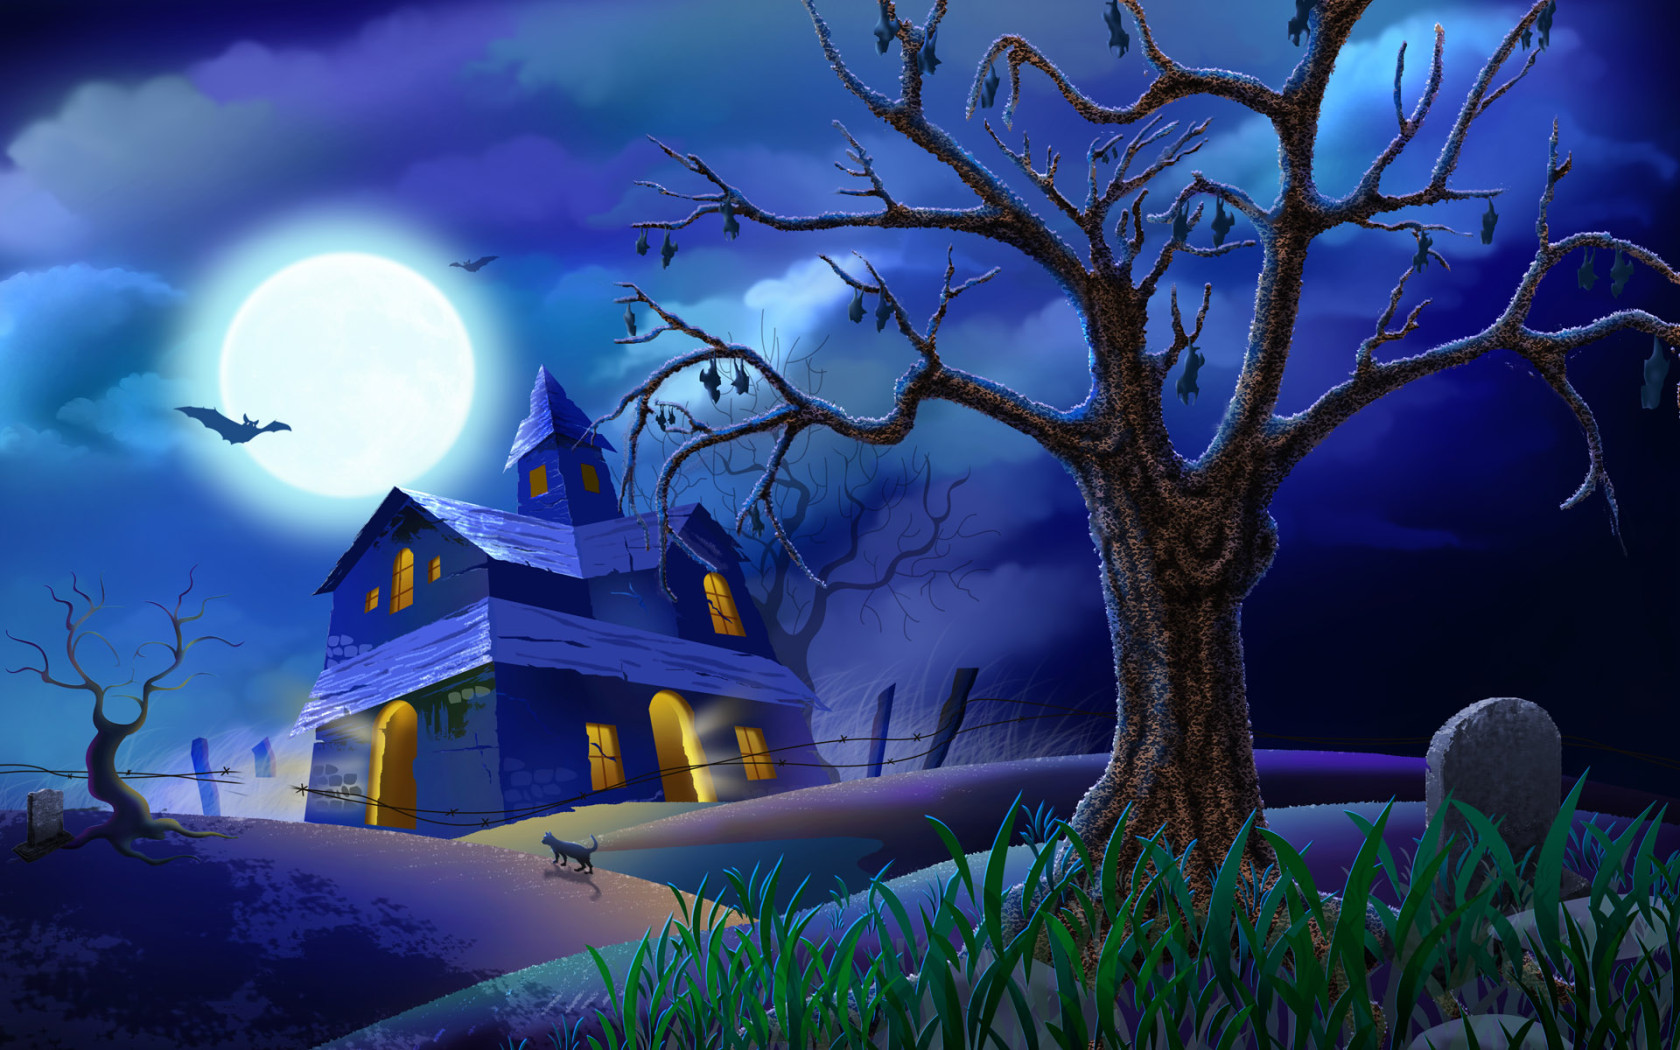 halloween wallpapers 3d cool - HD Desktop Wallpapers | 4k HD